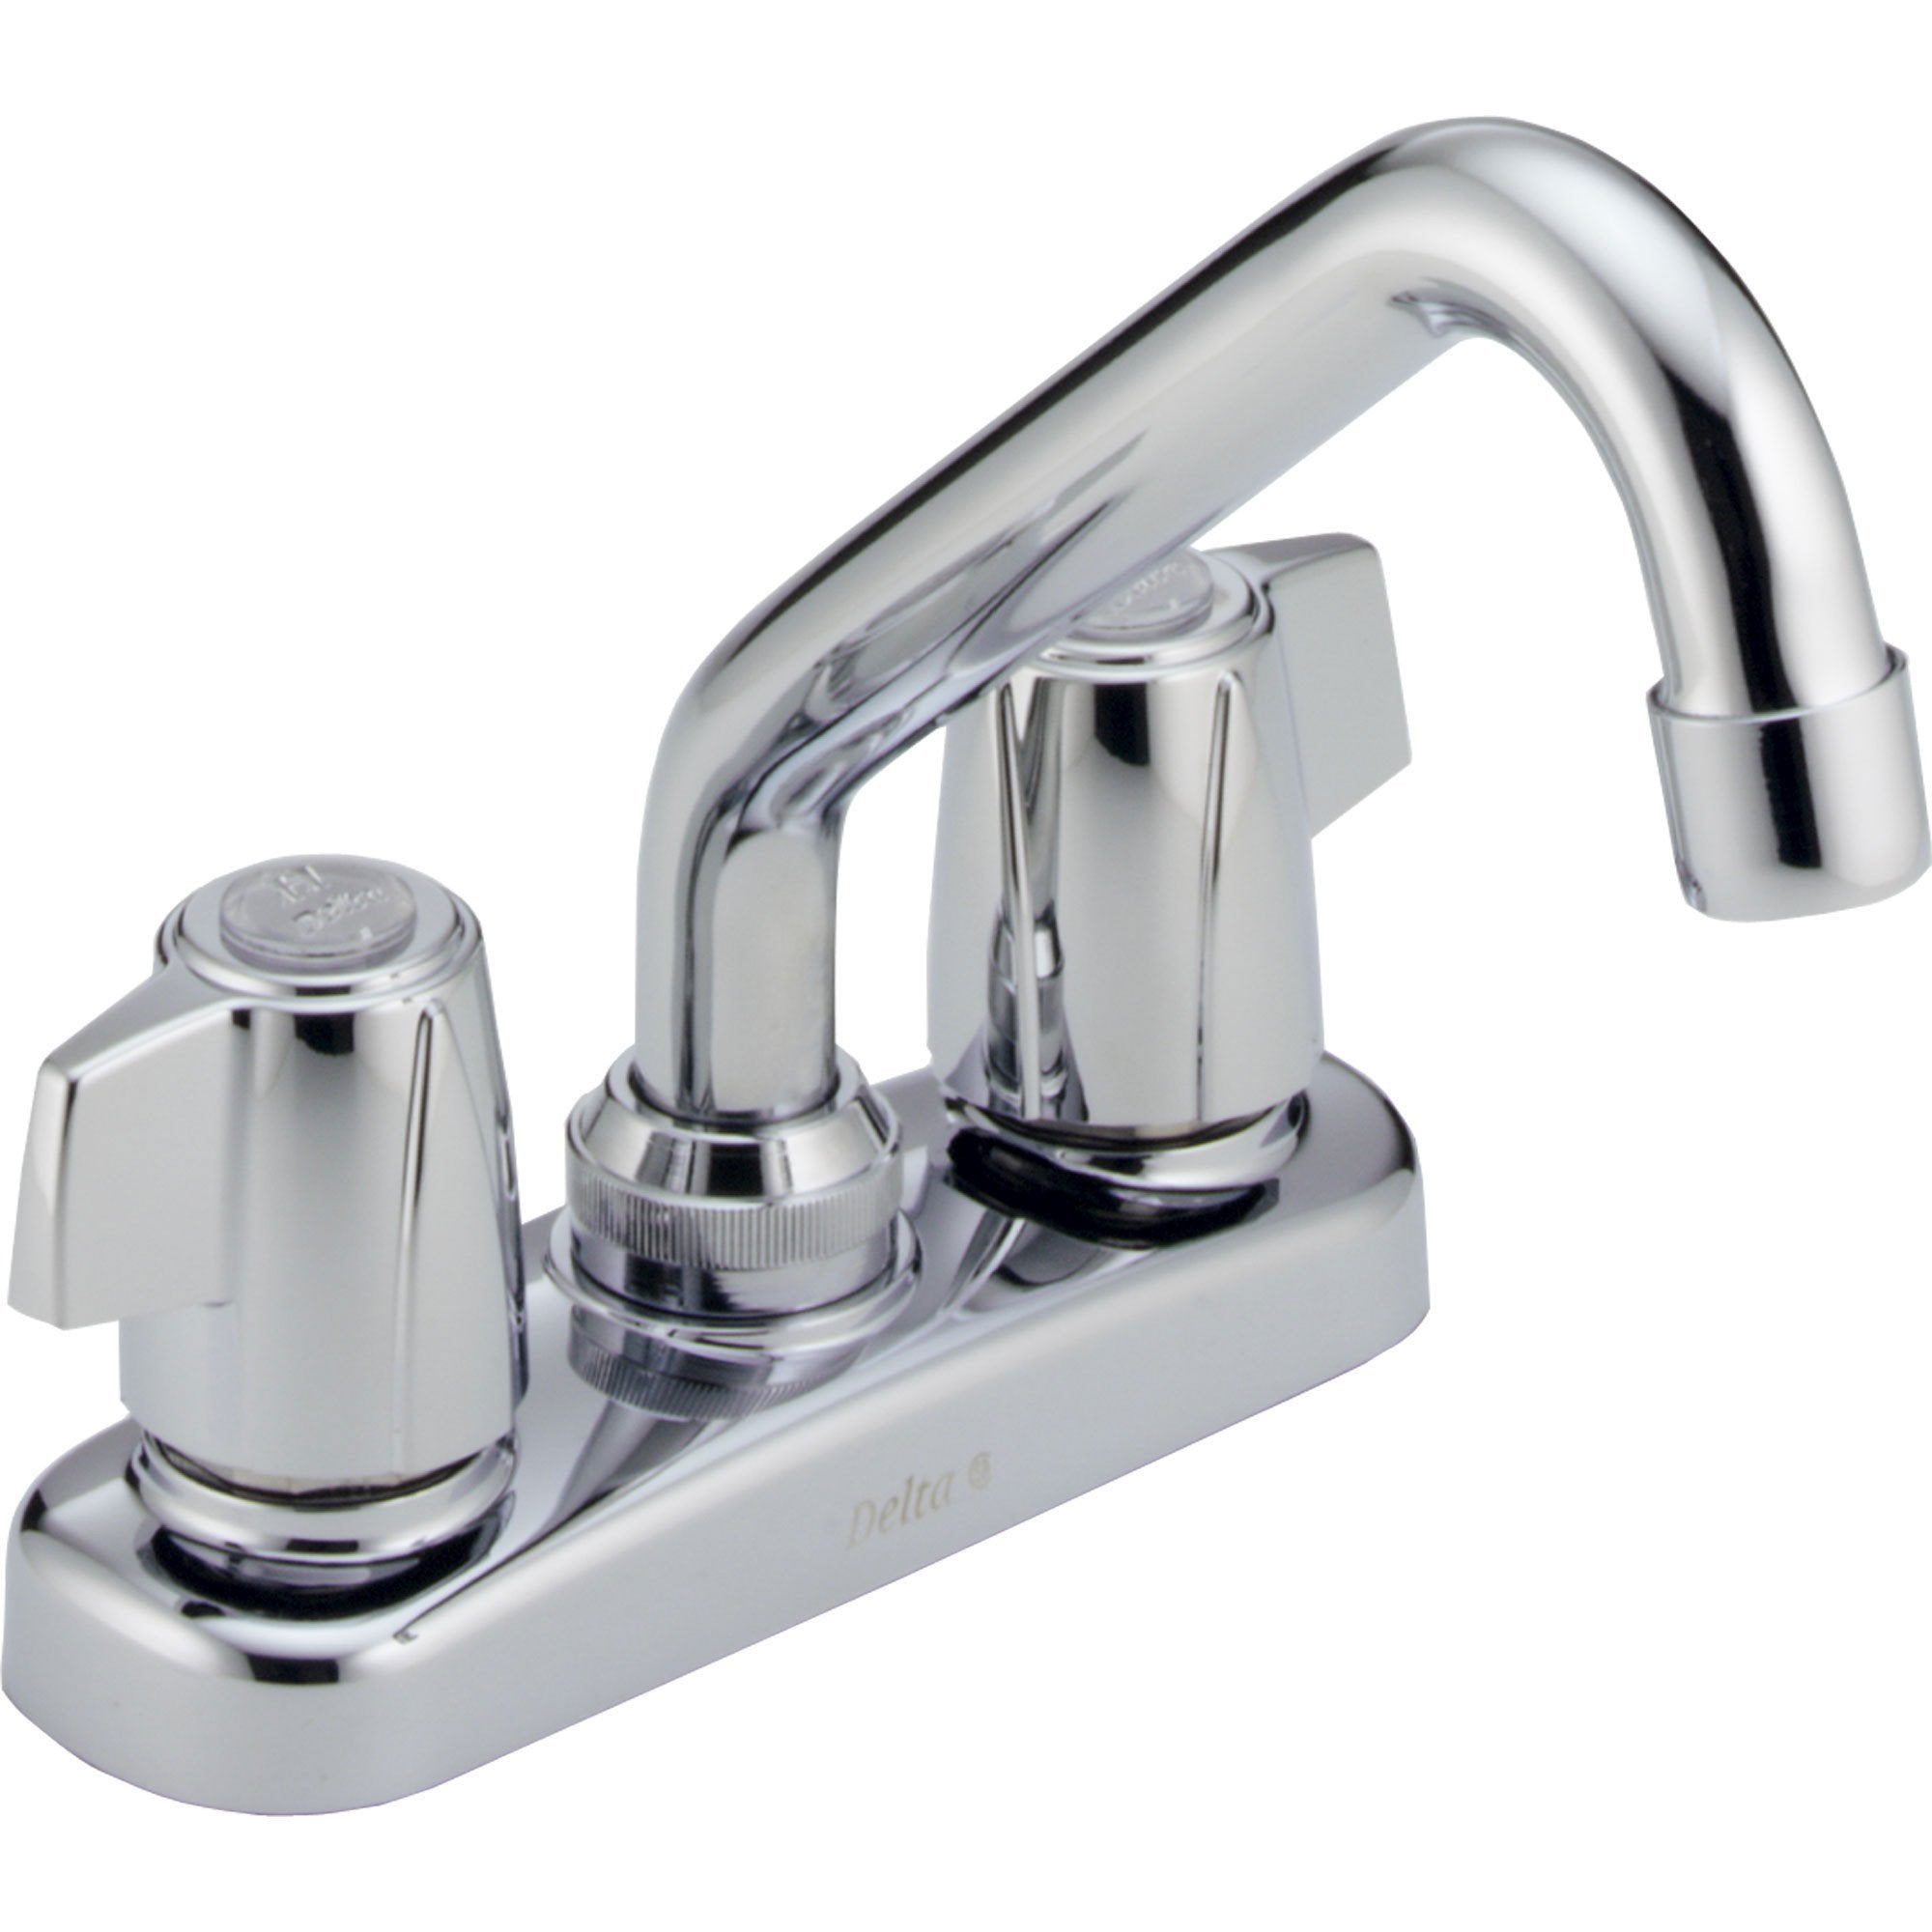 Delta Chrome Finish Two Handle Centerset Laundry Sink Faucet 572903